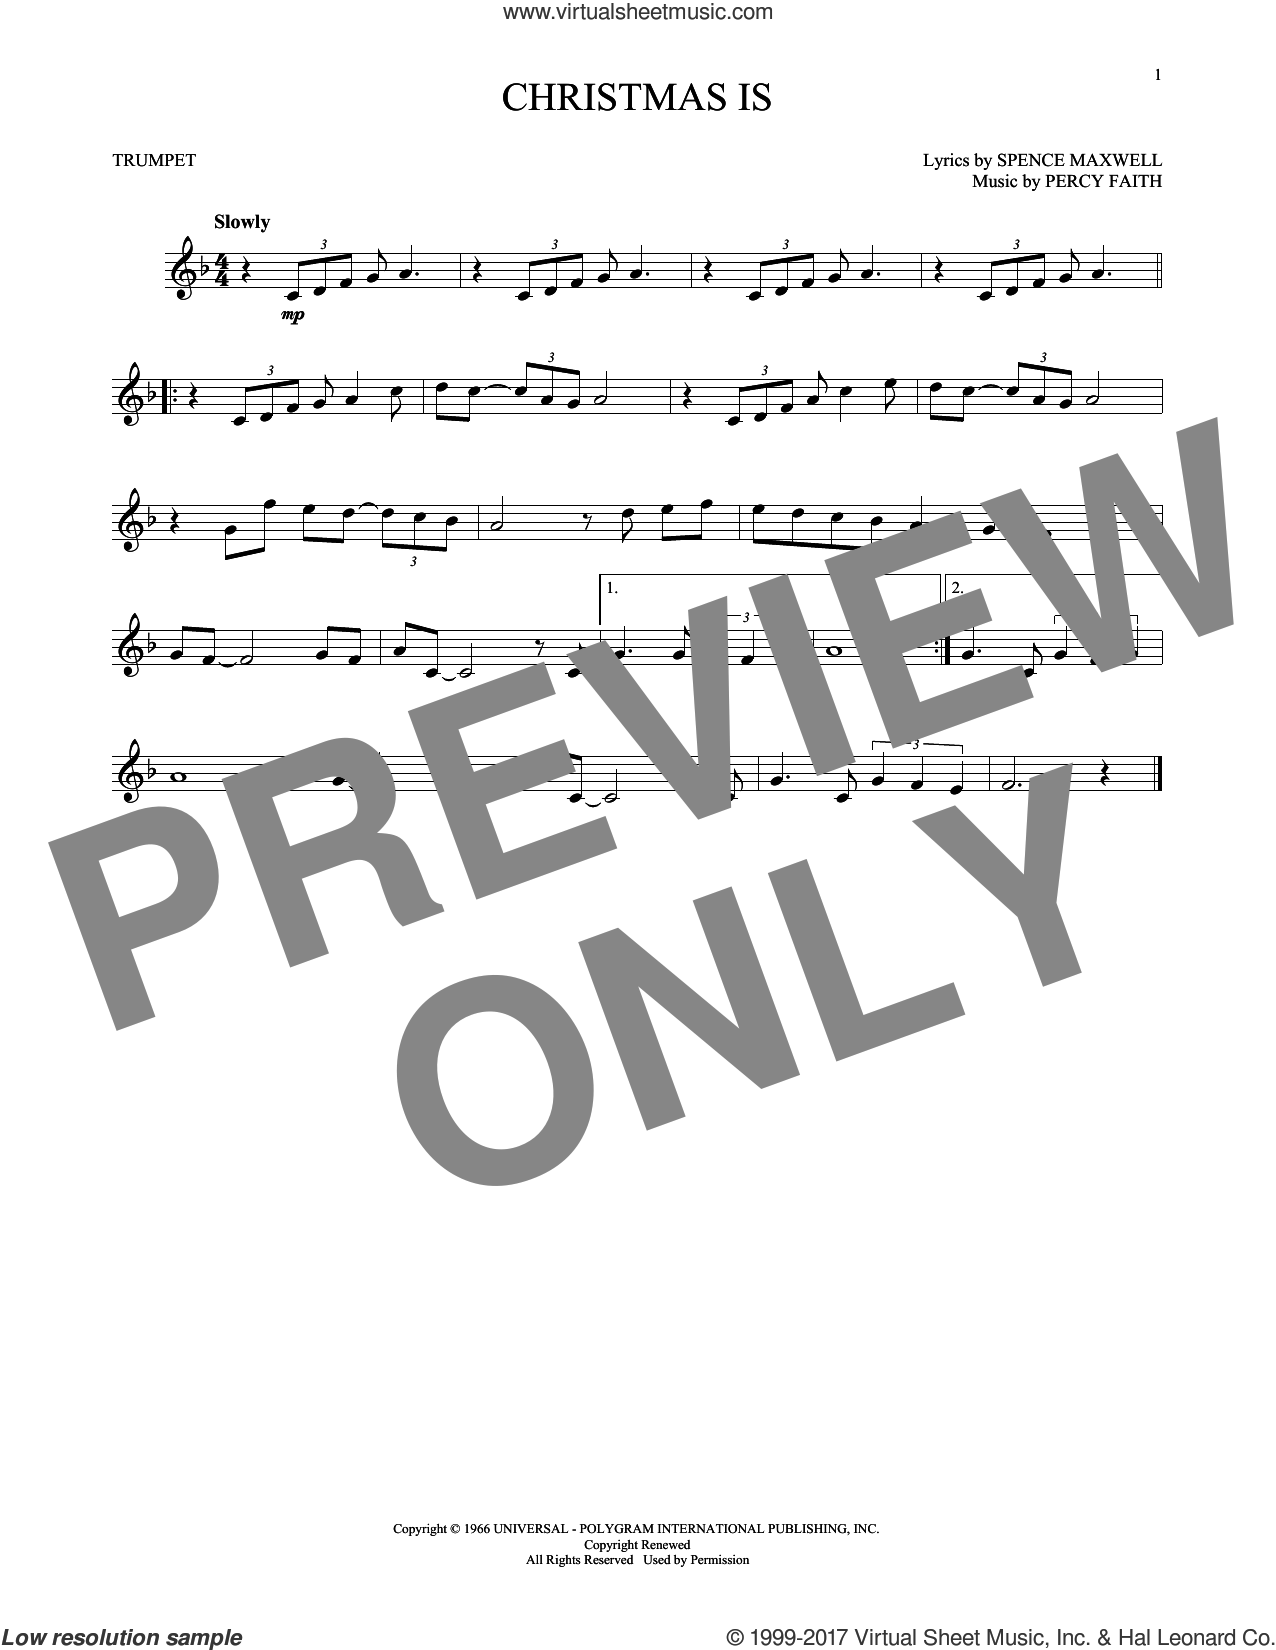 Christmas Is sheet music for trumpet solo by Percy Faith and Spence Maxwell, intermediate skill level